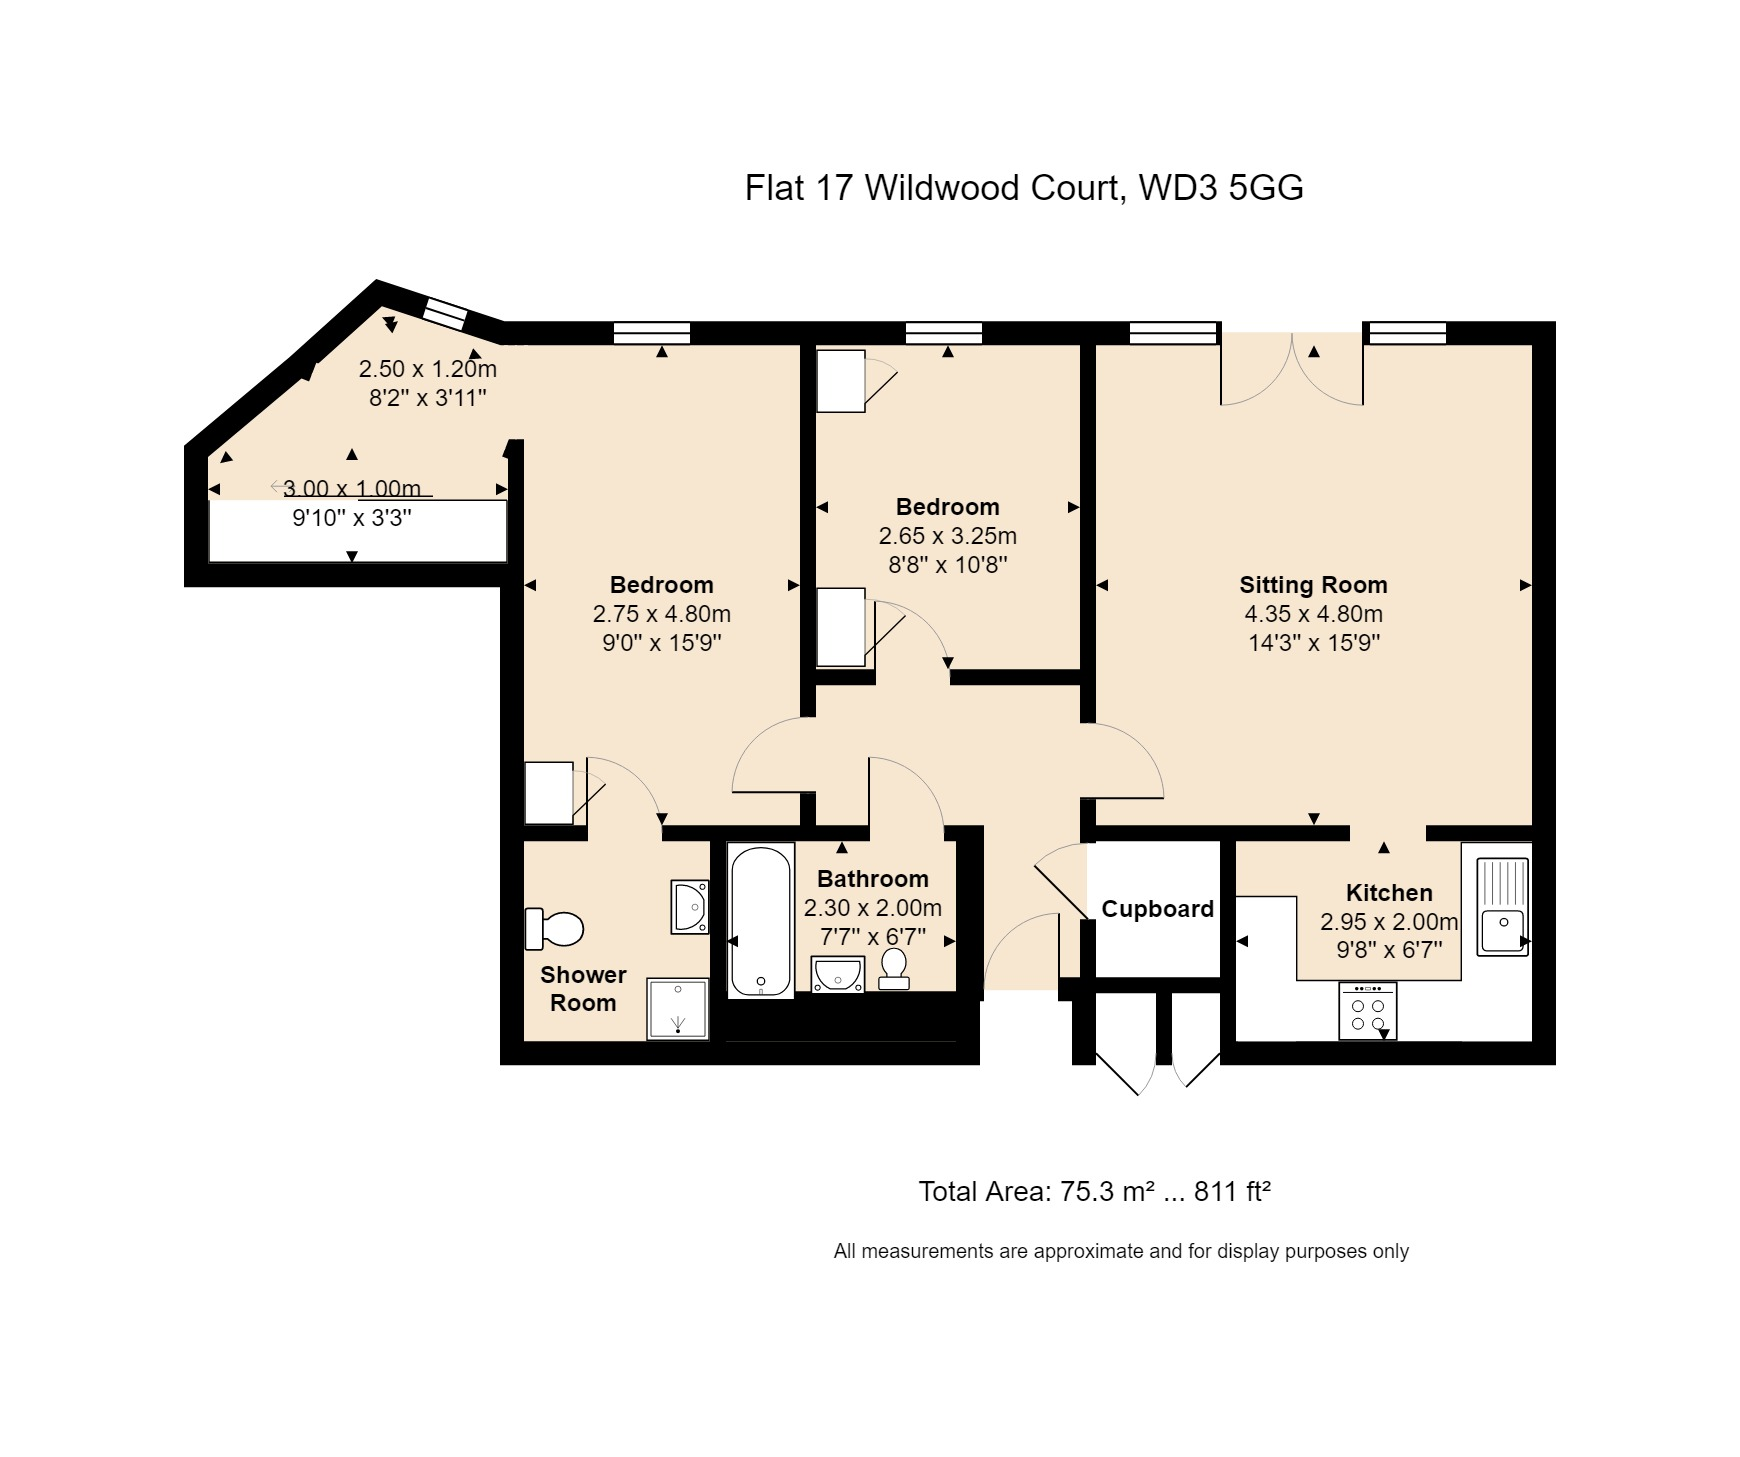 17 Wildwood Court Floorplan